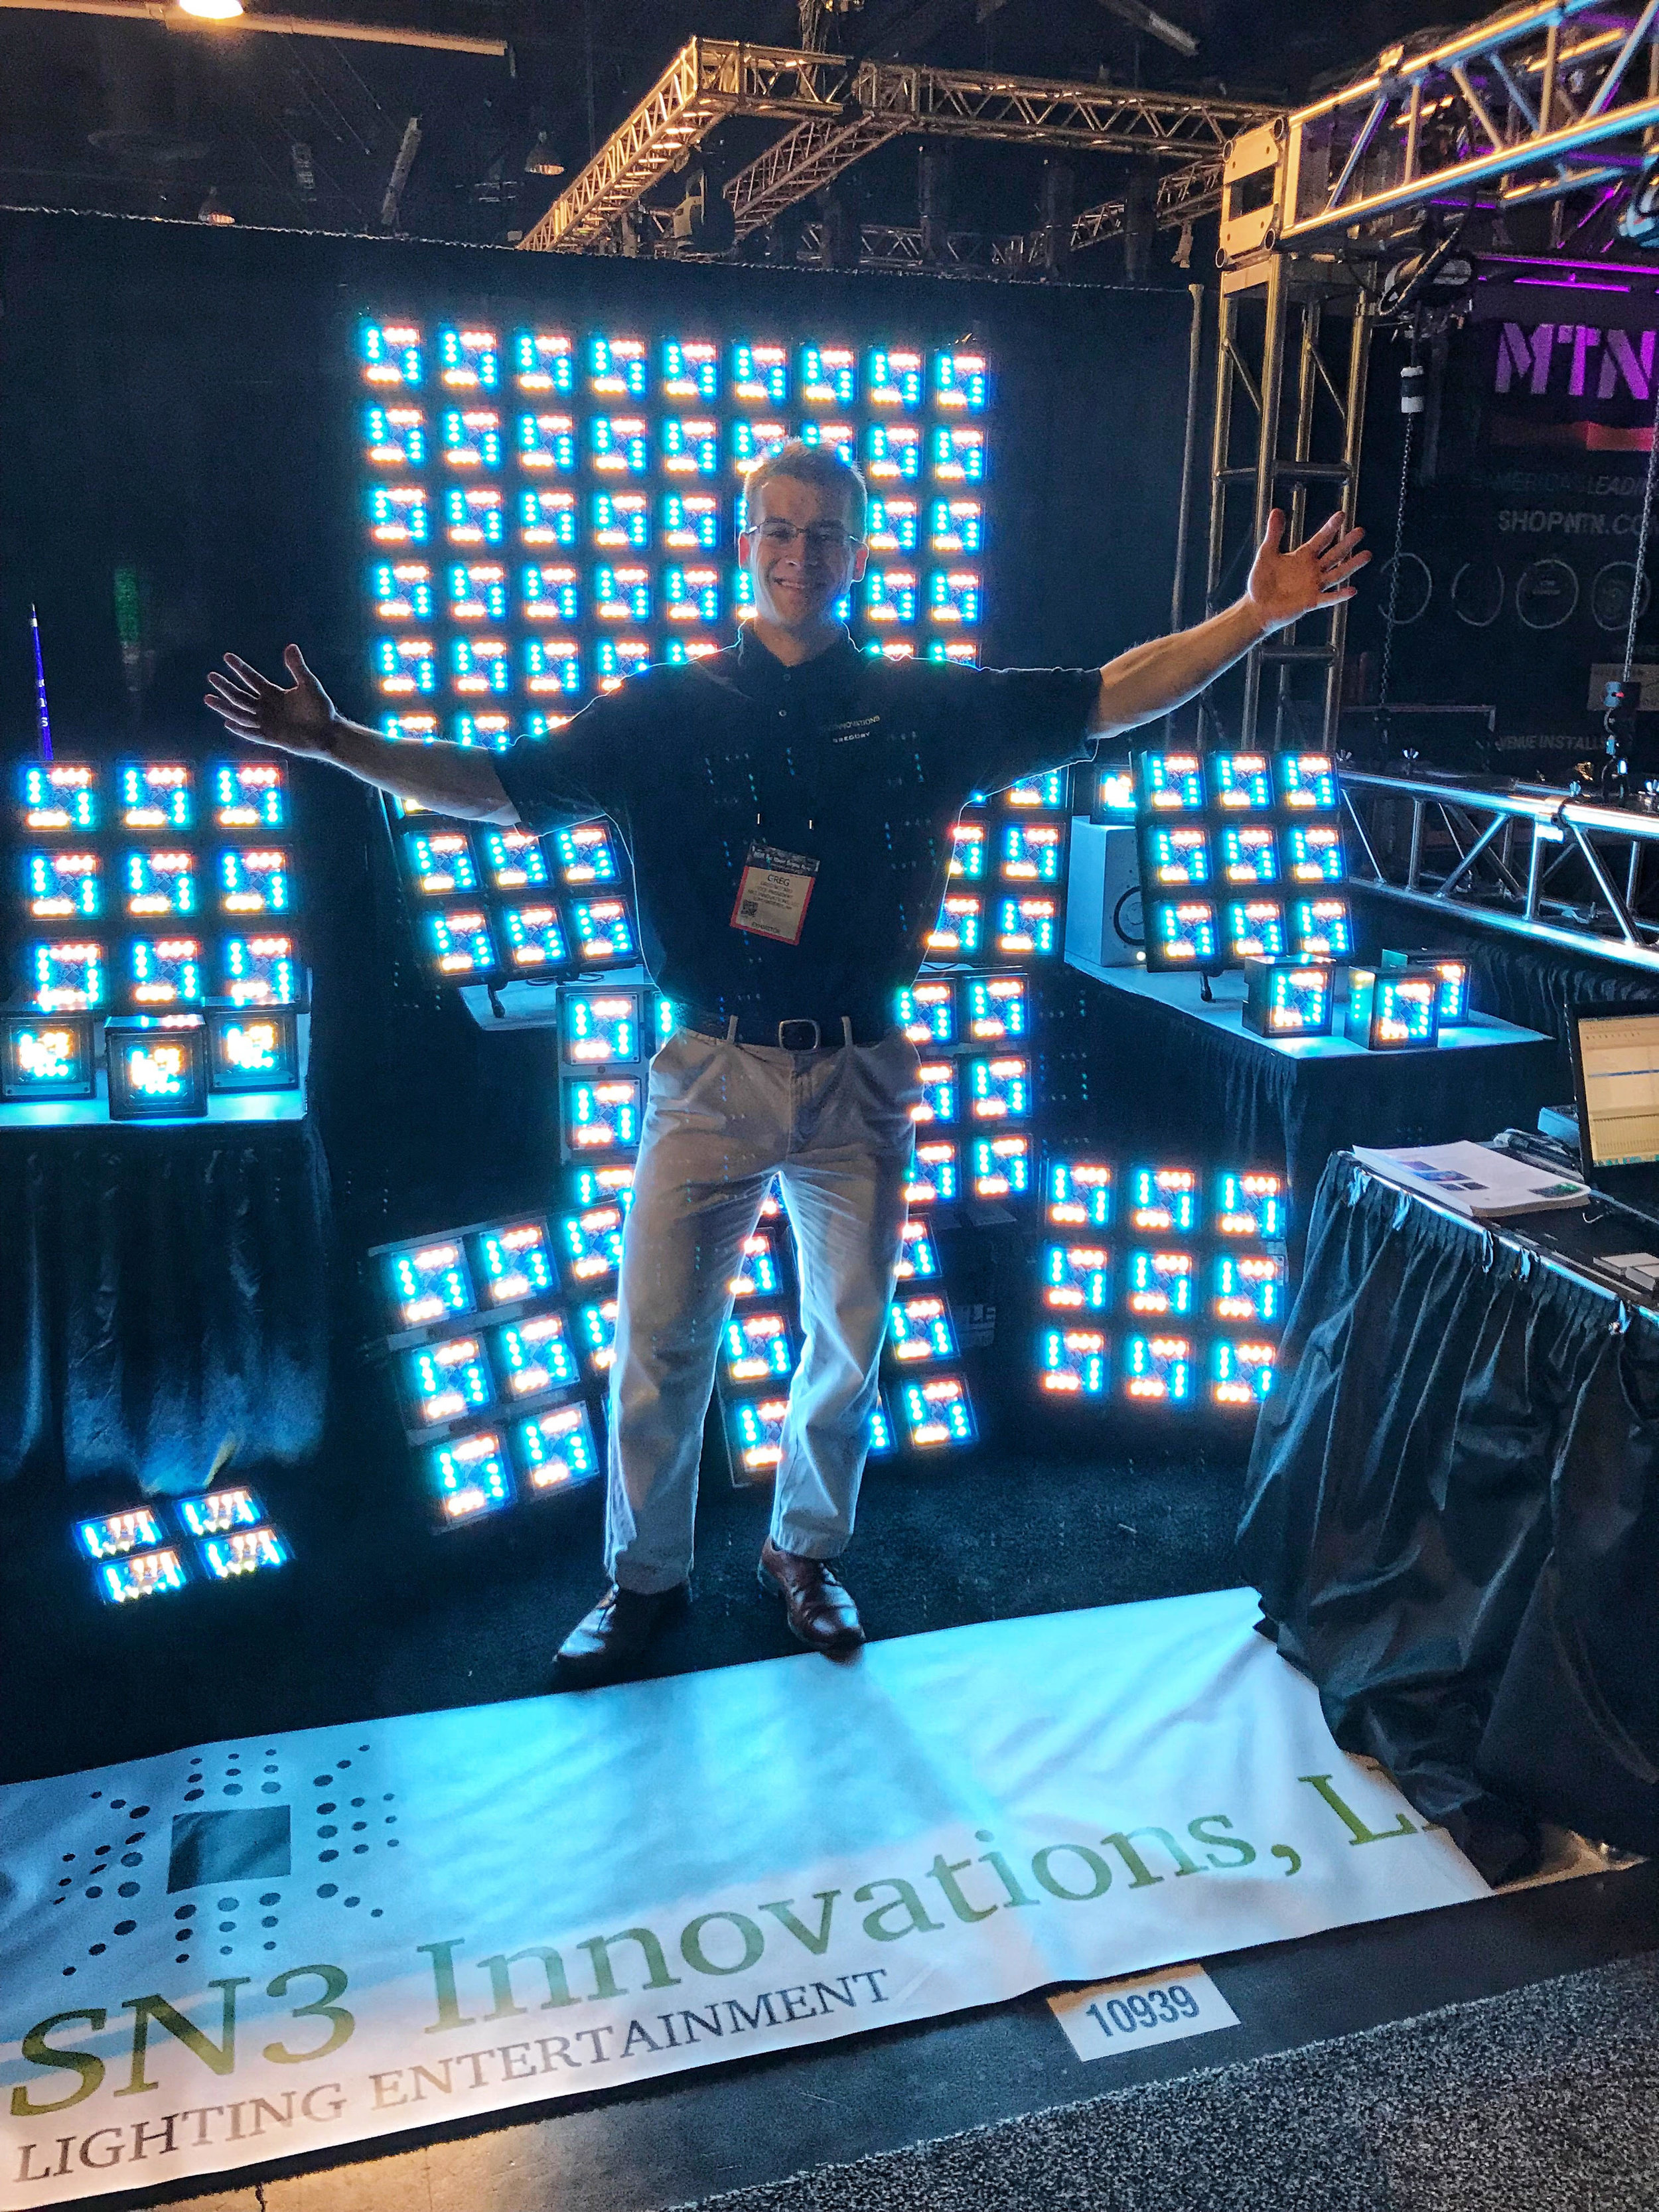 Winter NAMM Show - Sn3 Innovations Booth # 10939  (Master/Slave operation with DMX control simultaneously)